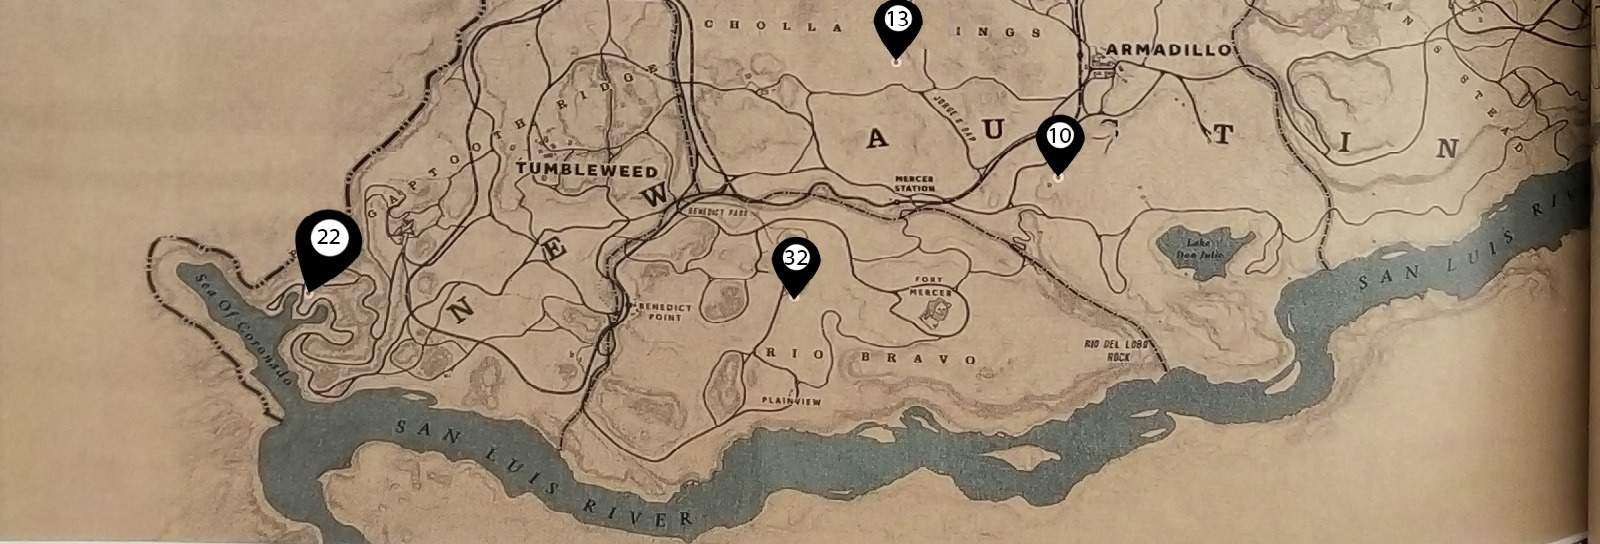 Red Dead 2 World Map.Red Dead Redemption 2 Points Of Interest Locations Guide Segmentnext